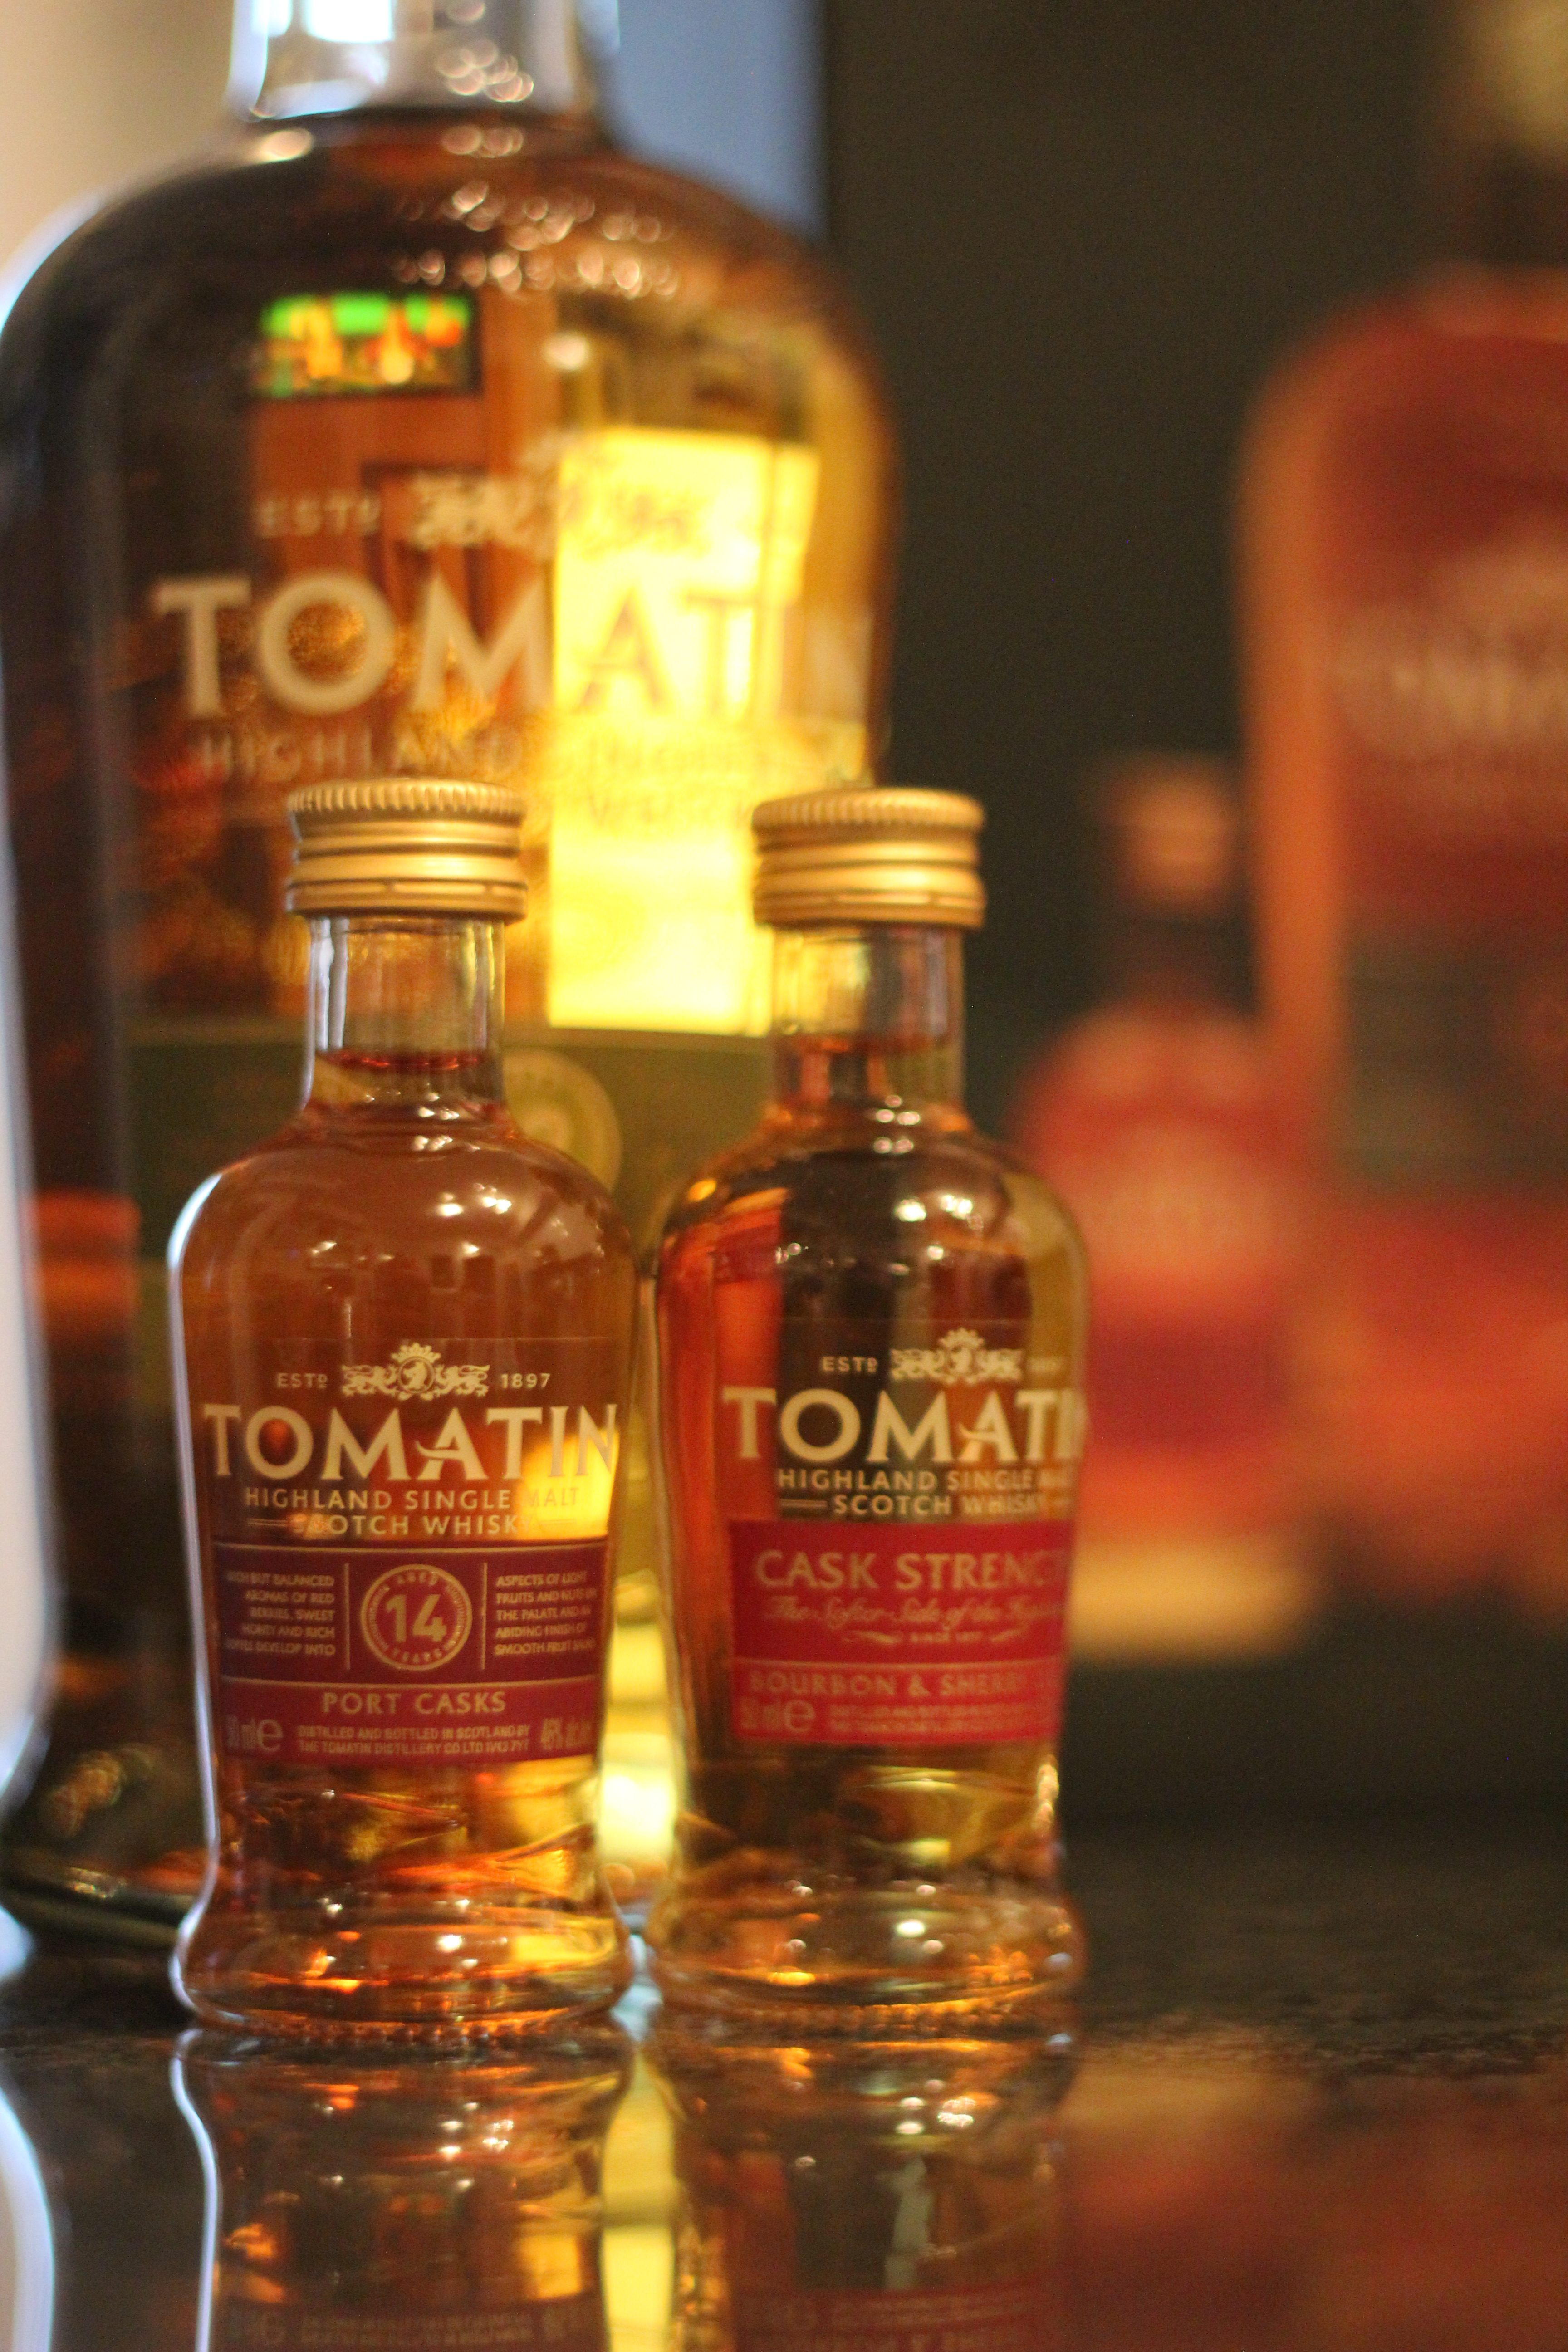 BattleScotch! Tomatin Second Edition with Dan